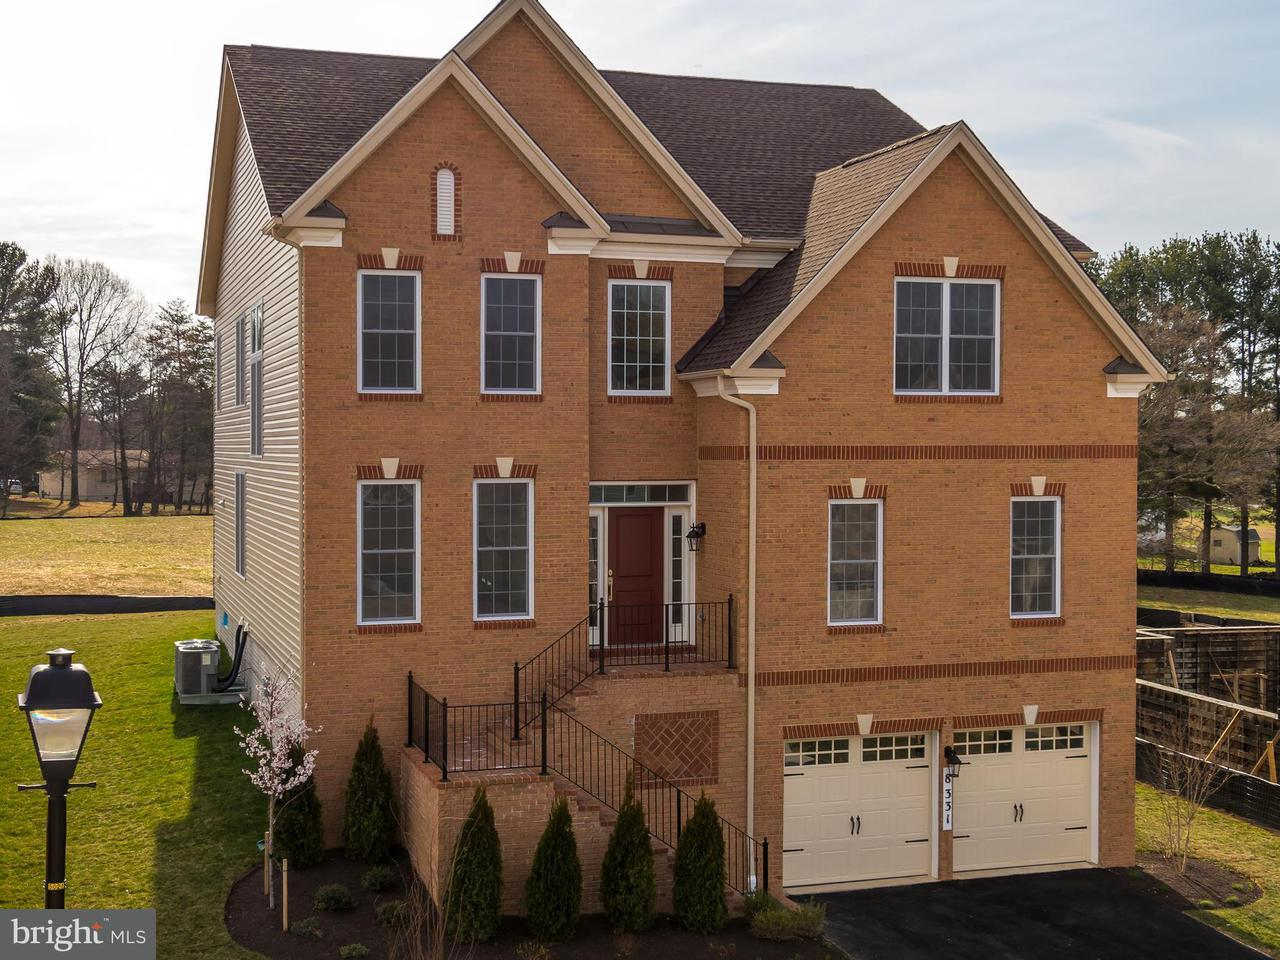 Vivienda unifamiliar por un Venta en 8331 Canyon Oak Drive 8331 Canyon Oak Drive Severn, Maryland 21144 Estados Unidos